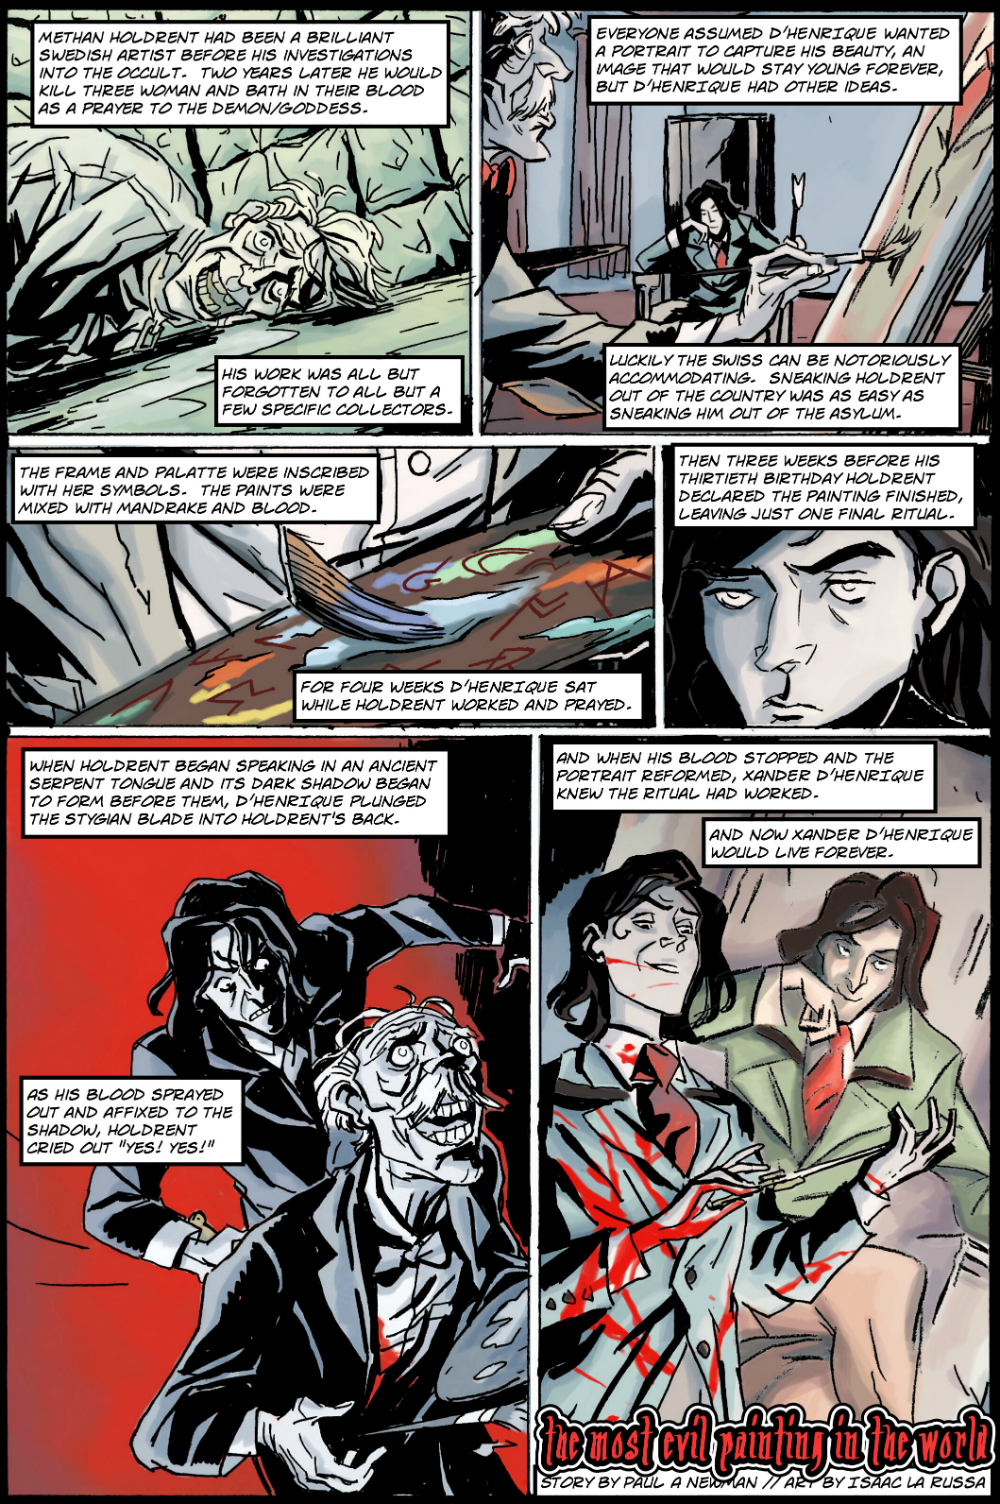 MOST EVIL PAINTING IN THE WORLD page 2 - story 17 in The Book of Lies